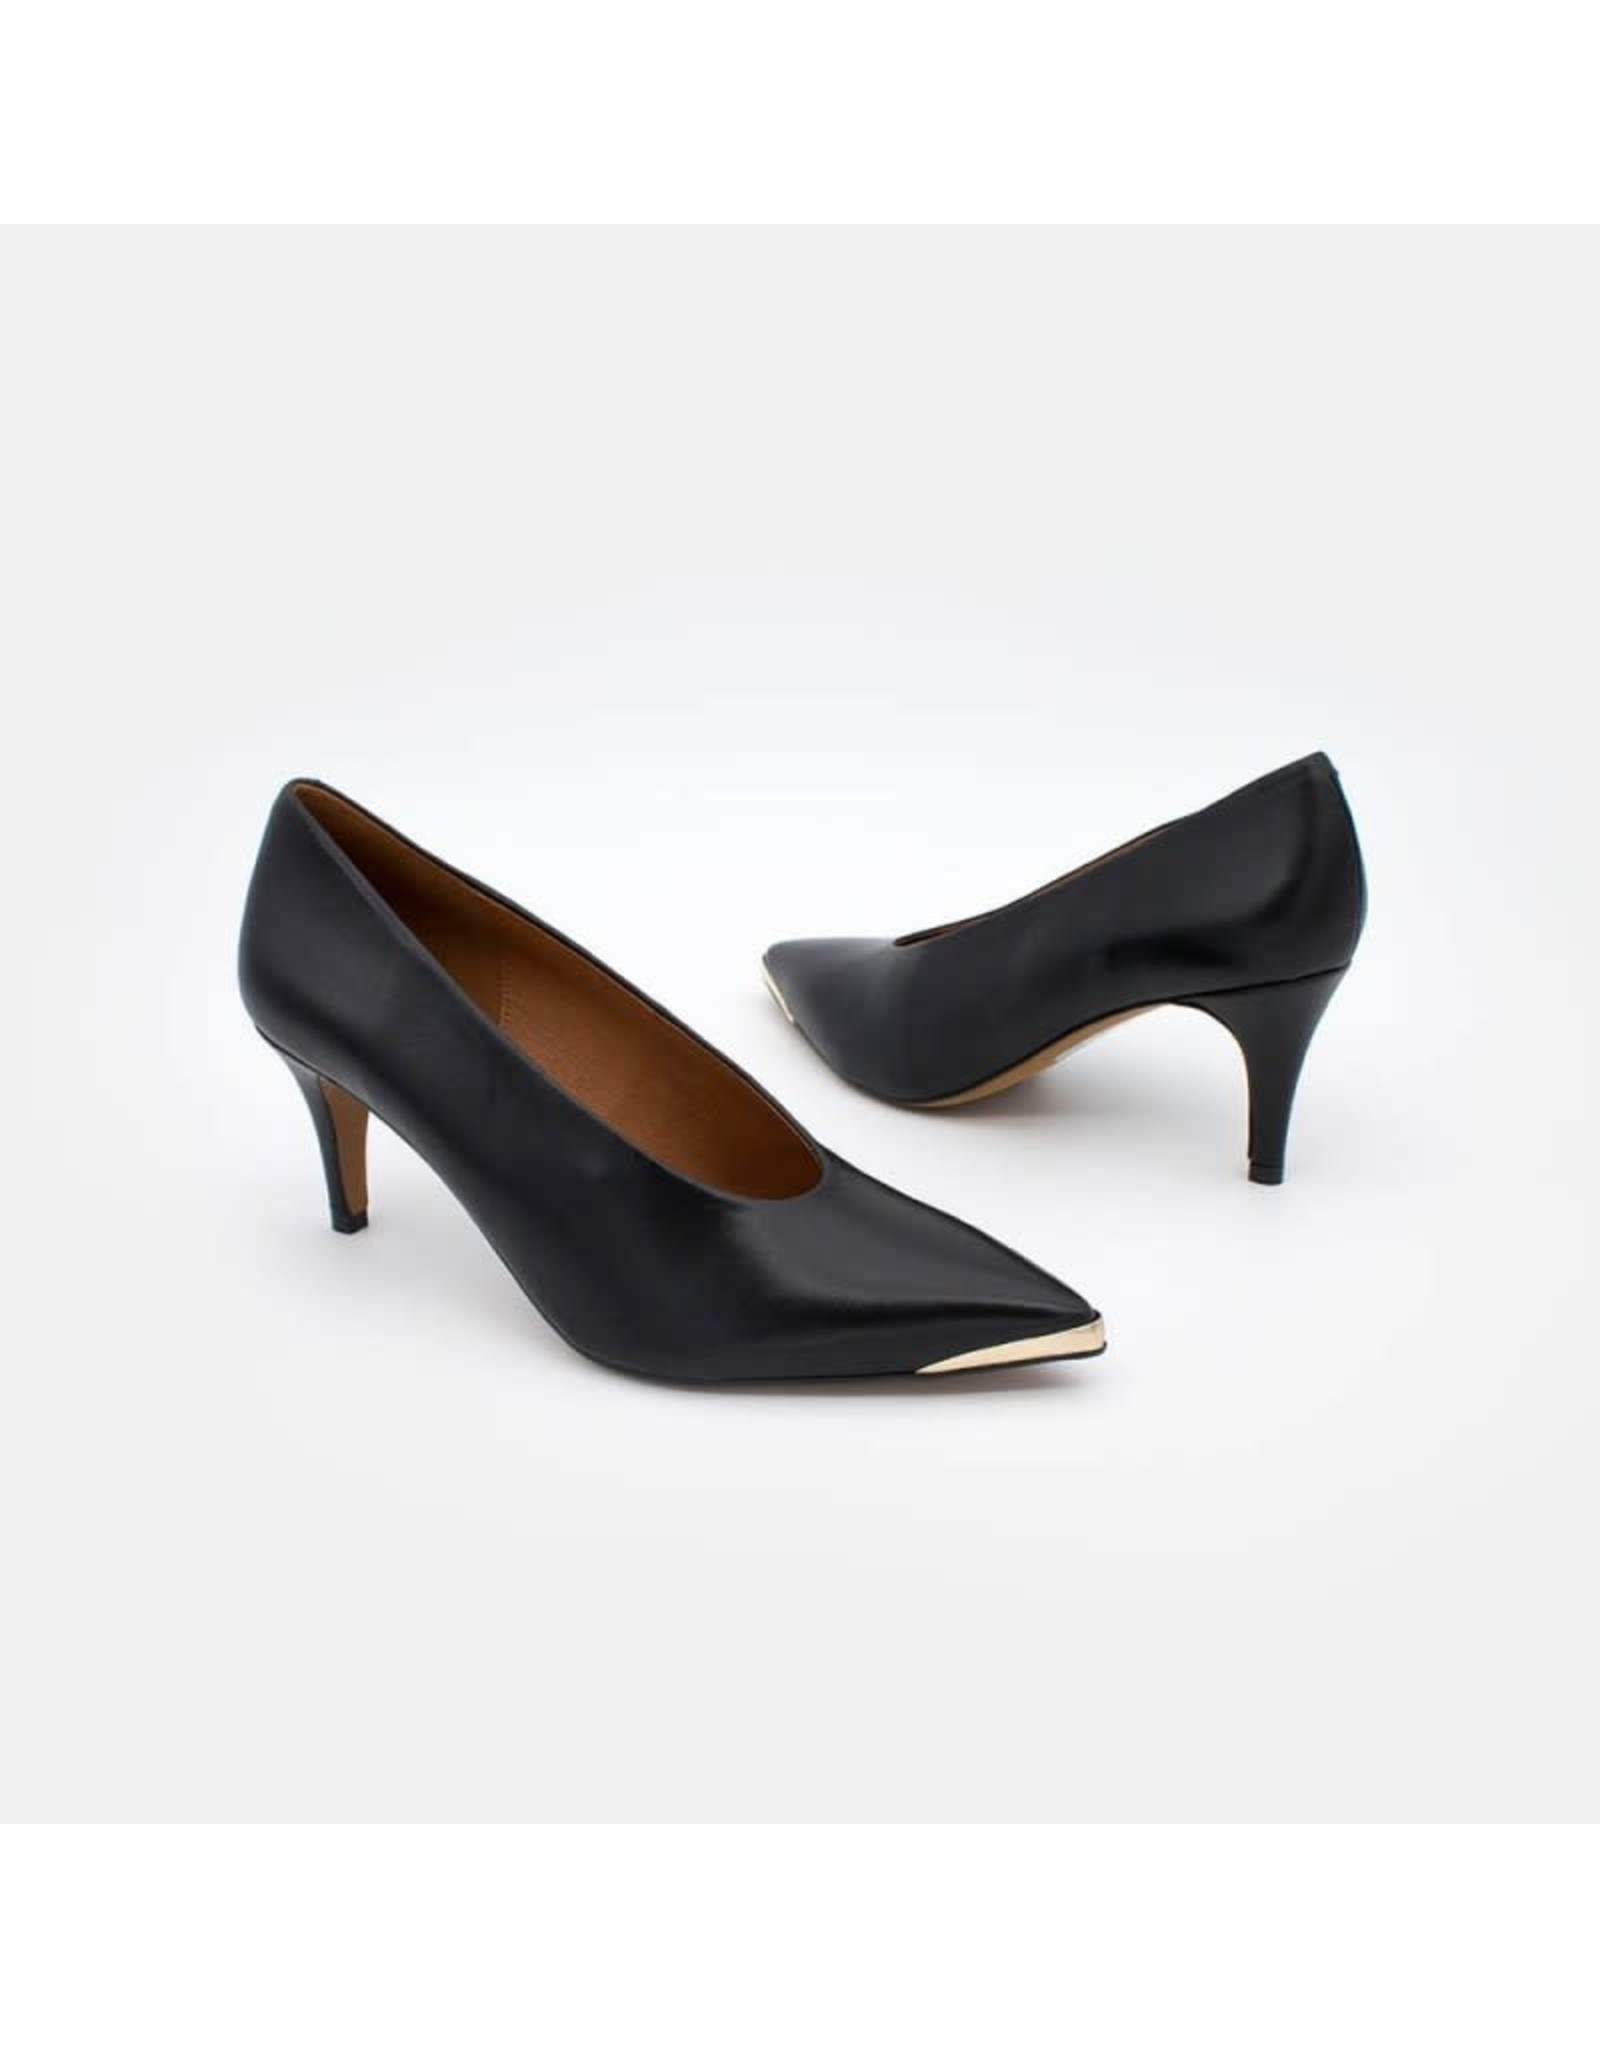 Angel Alarcon Angel Alarcon - BOHOL - Leather Stiletto with medium heel & metal toe